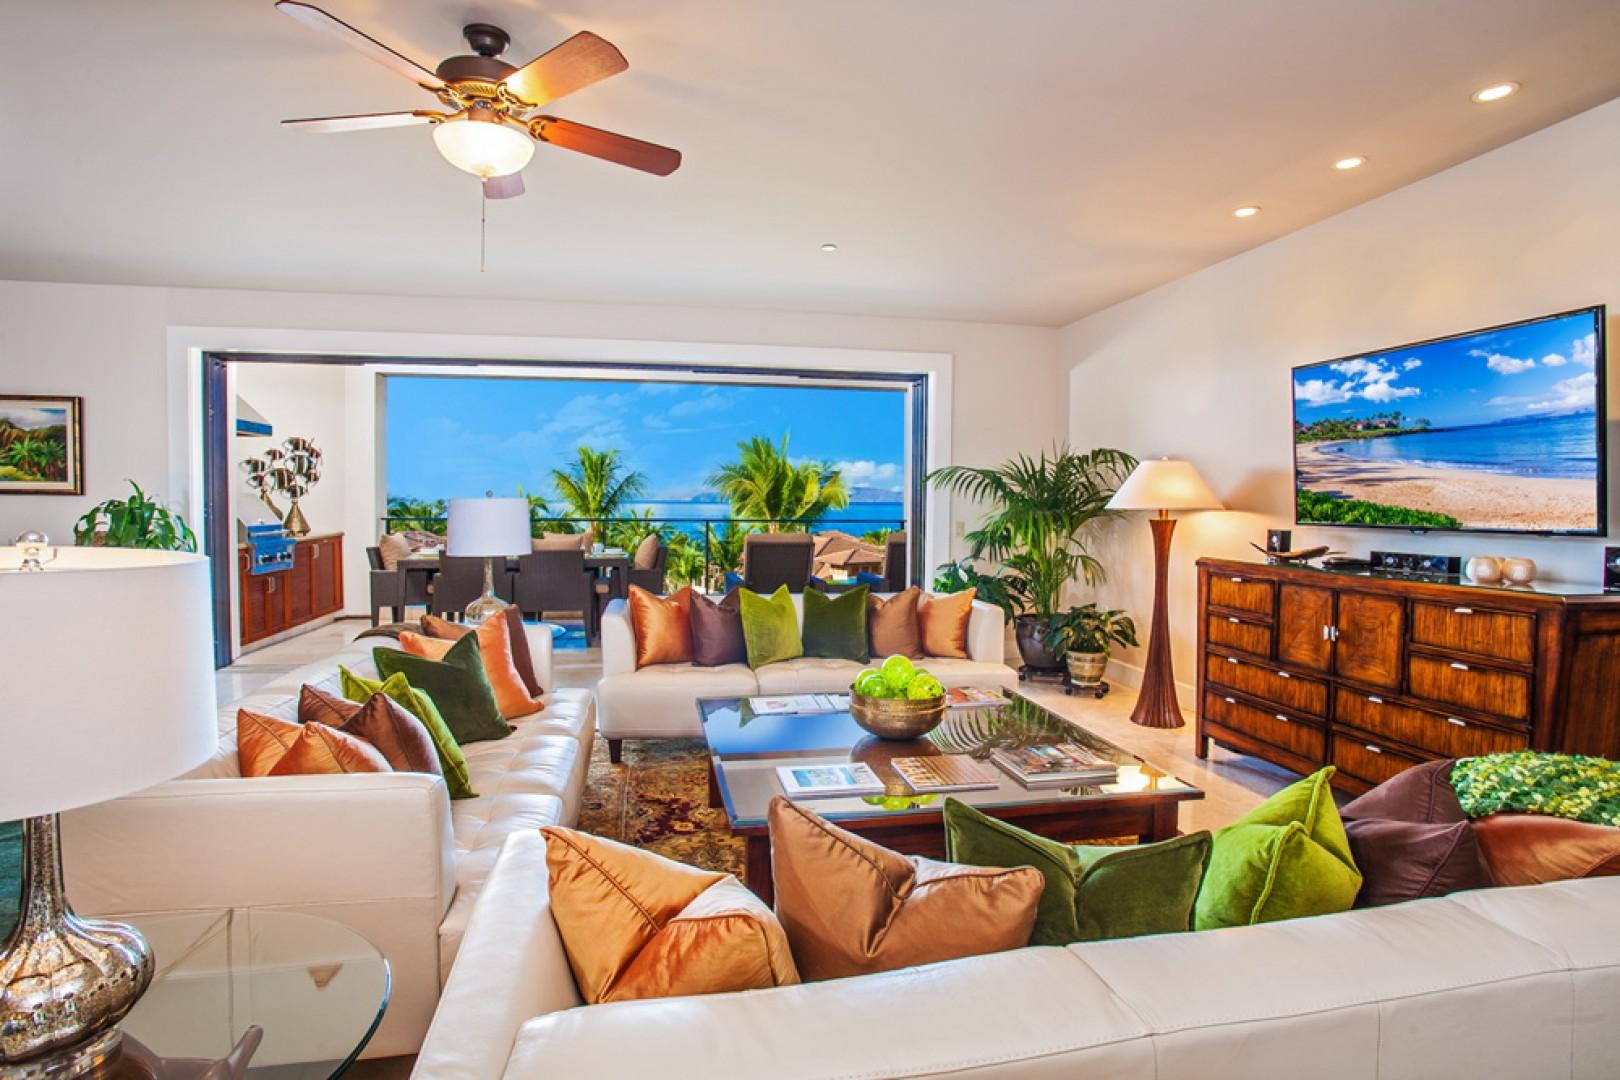 Blue Horizons K308 - Ocean View Great Room with Indoor Dining for Eight, Large HDTV, HD Cable, DVD/CD, Sofa Seating for Eight Guests, Alfresco Veranda with Grill, Dining and Lounging